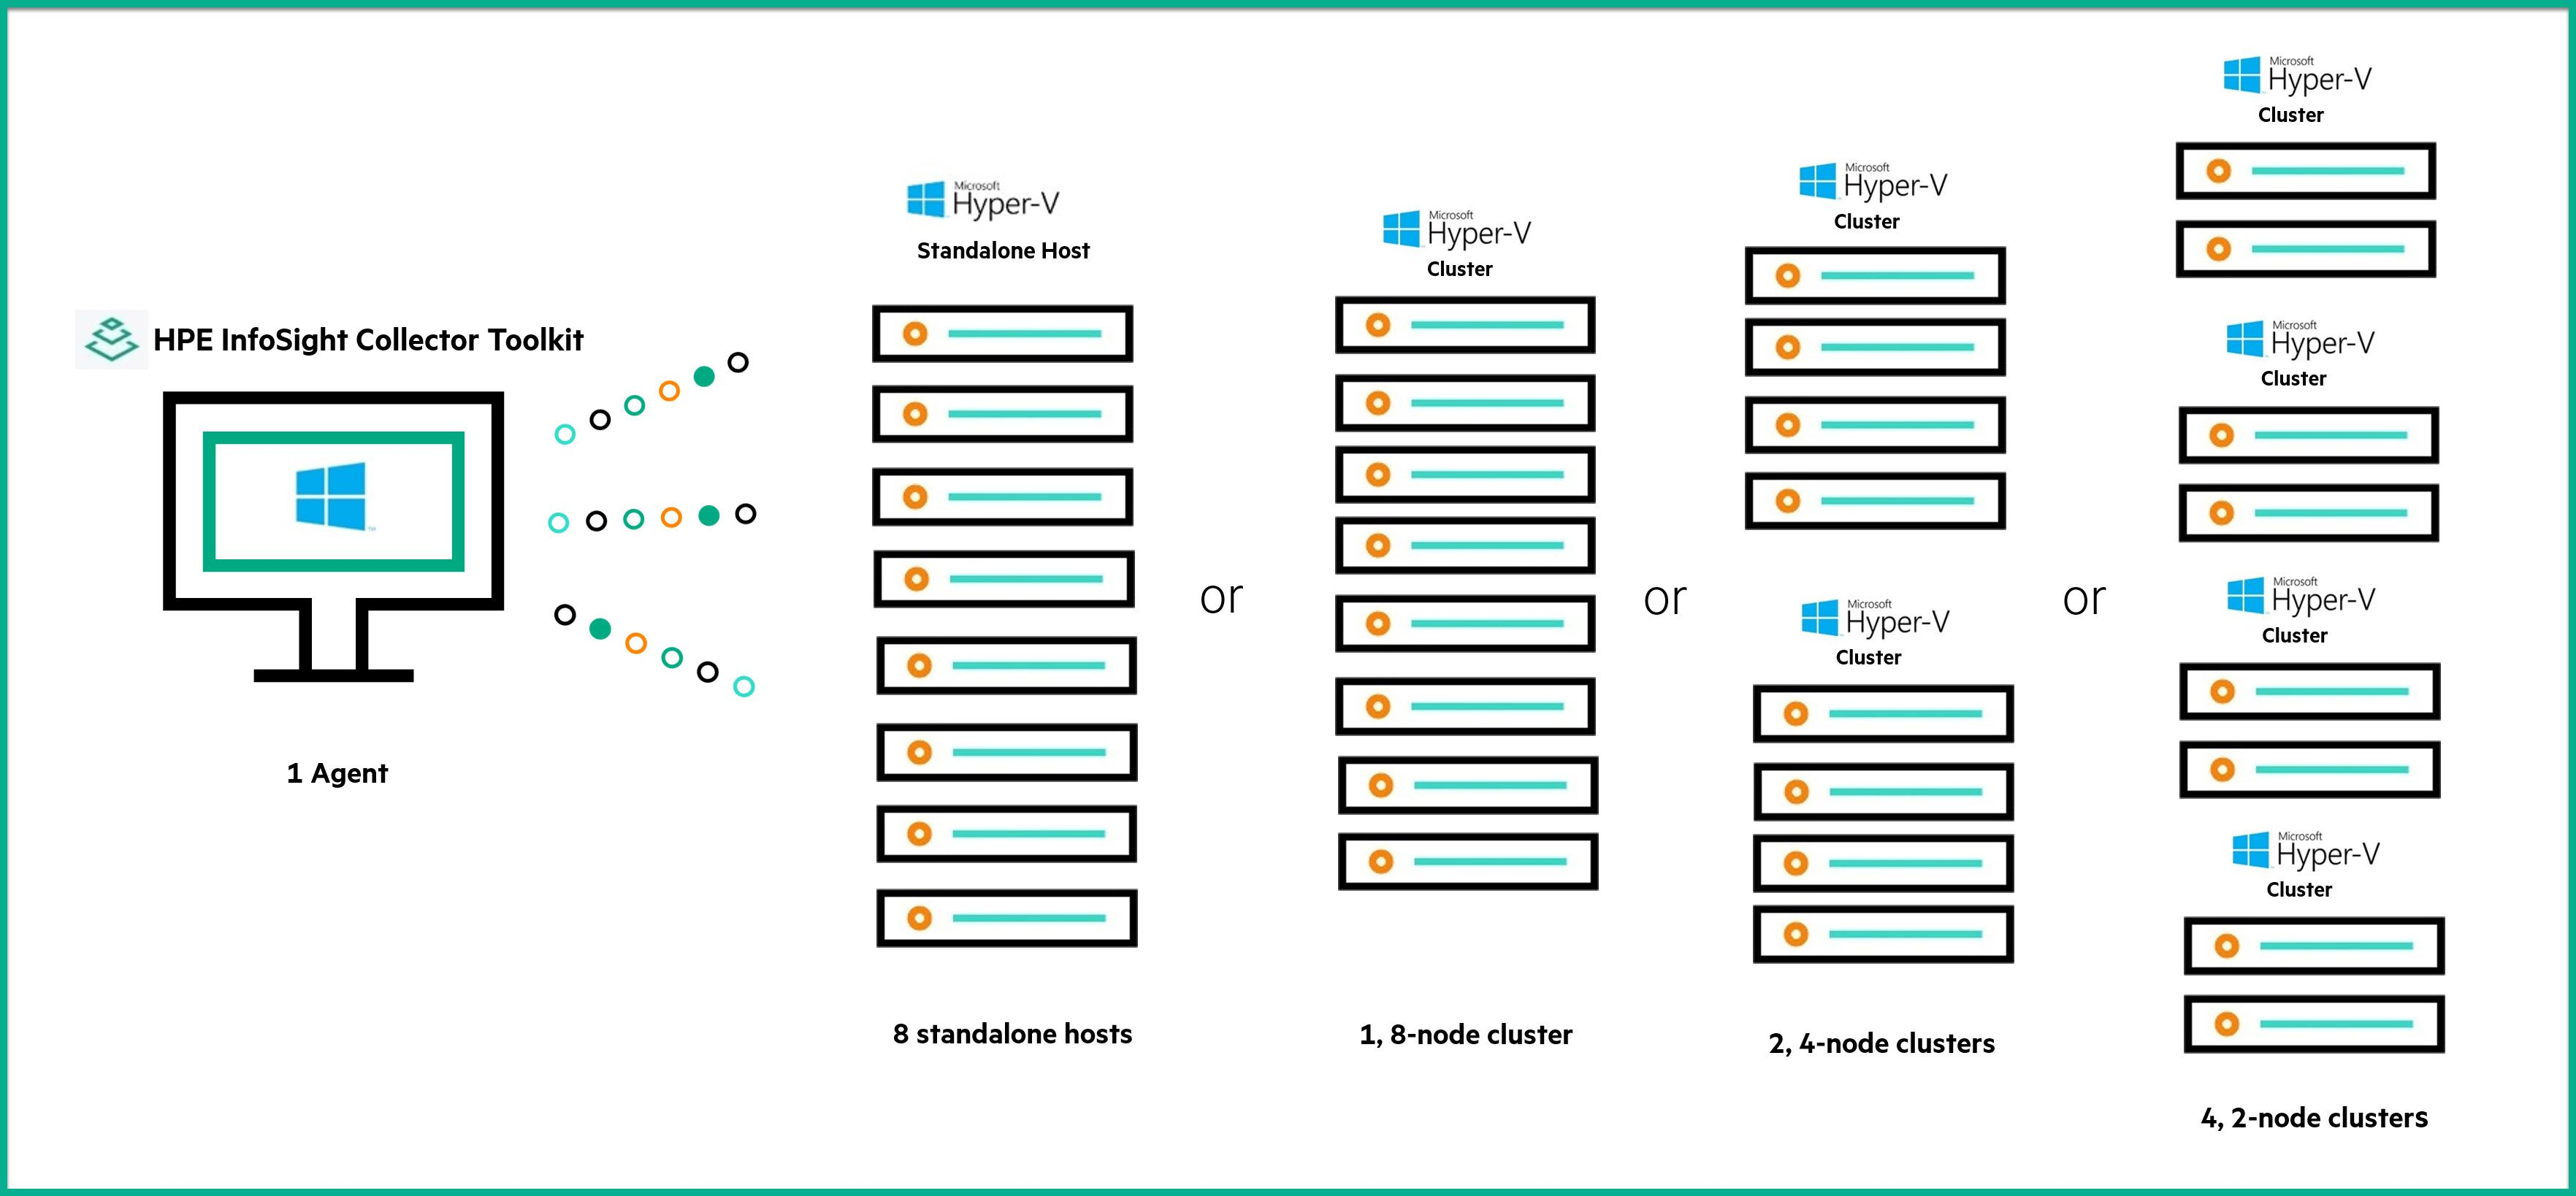 The HPE InfoSight Collector Toolkit